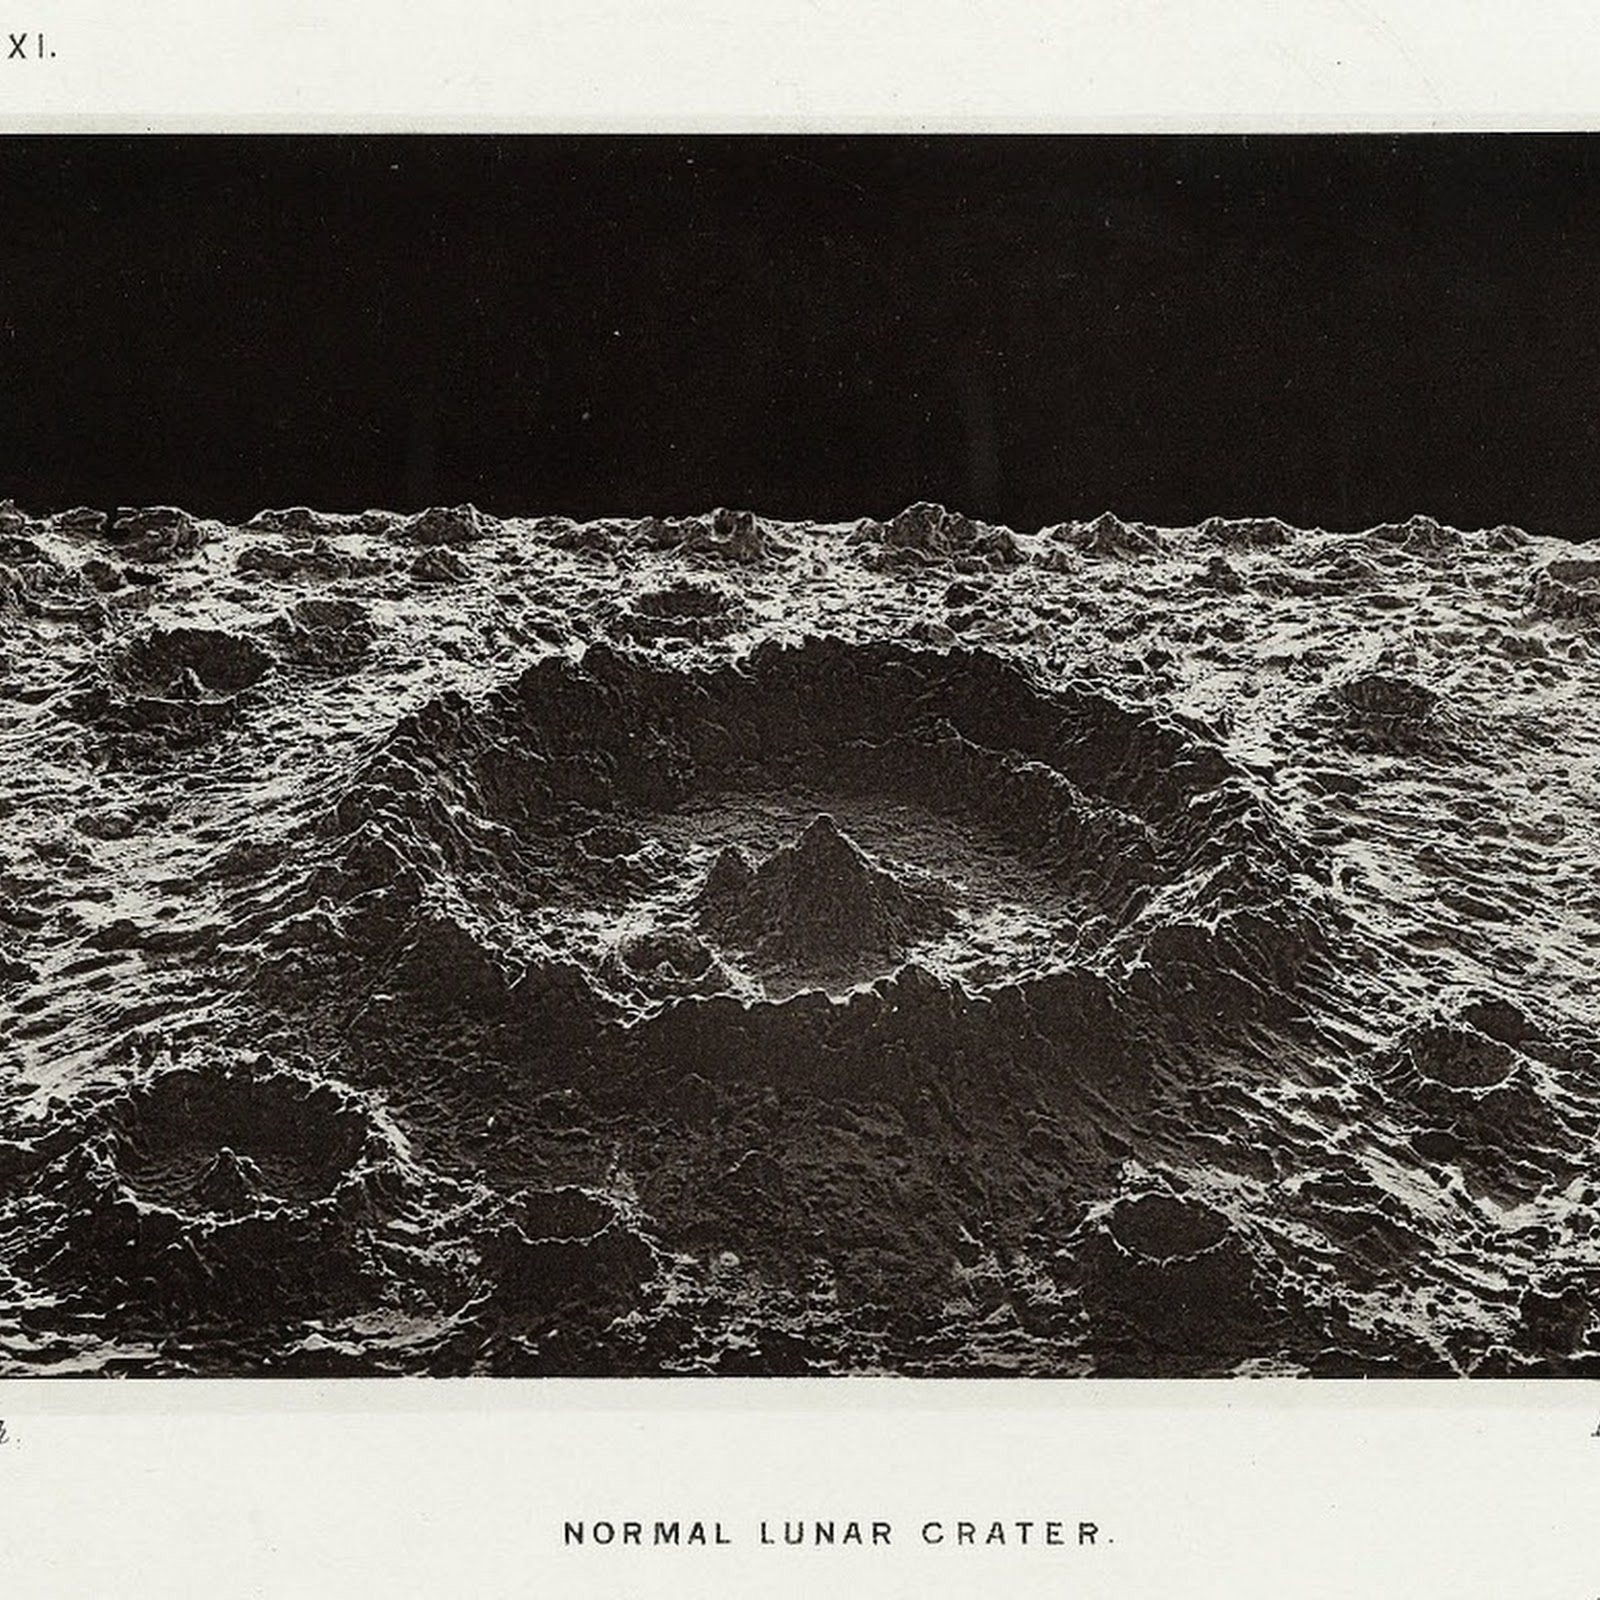 James Nasmyth's Fake Lunar Photographs From 1874